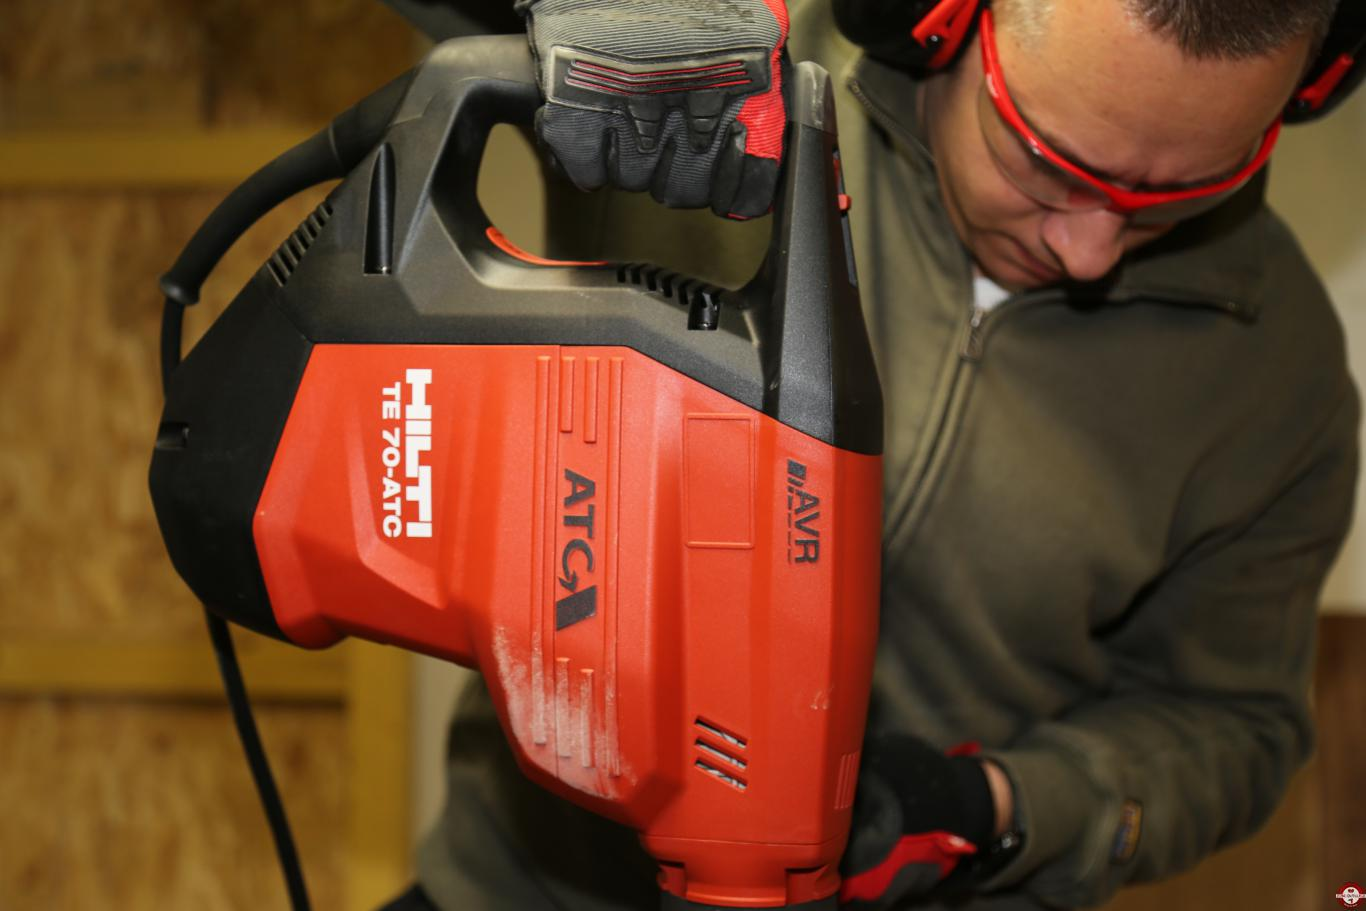 Forets TE-YX HILTI SDS-MAX 4 taillants et 6 taillants © Benjamin Leharivel - Zone Outillage